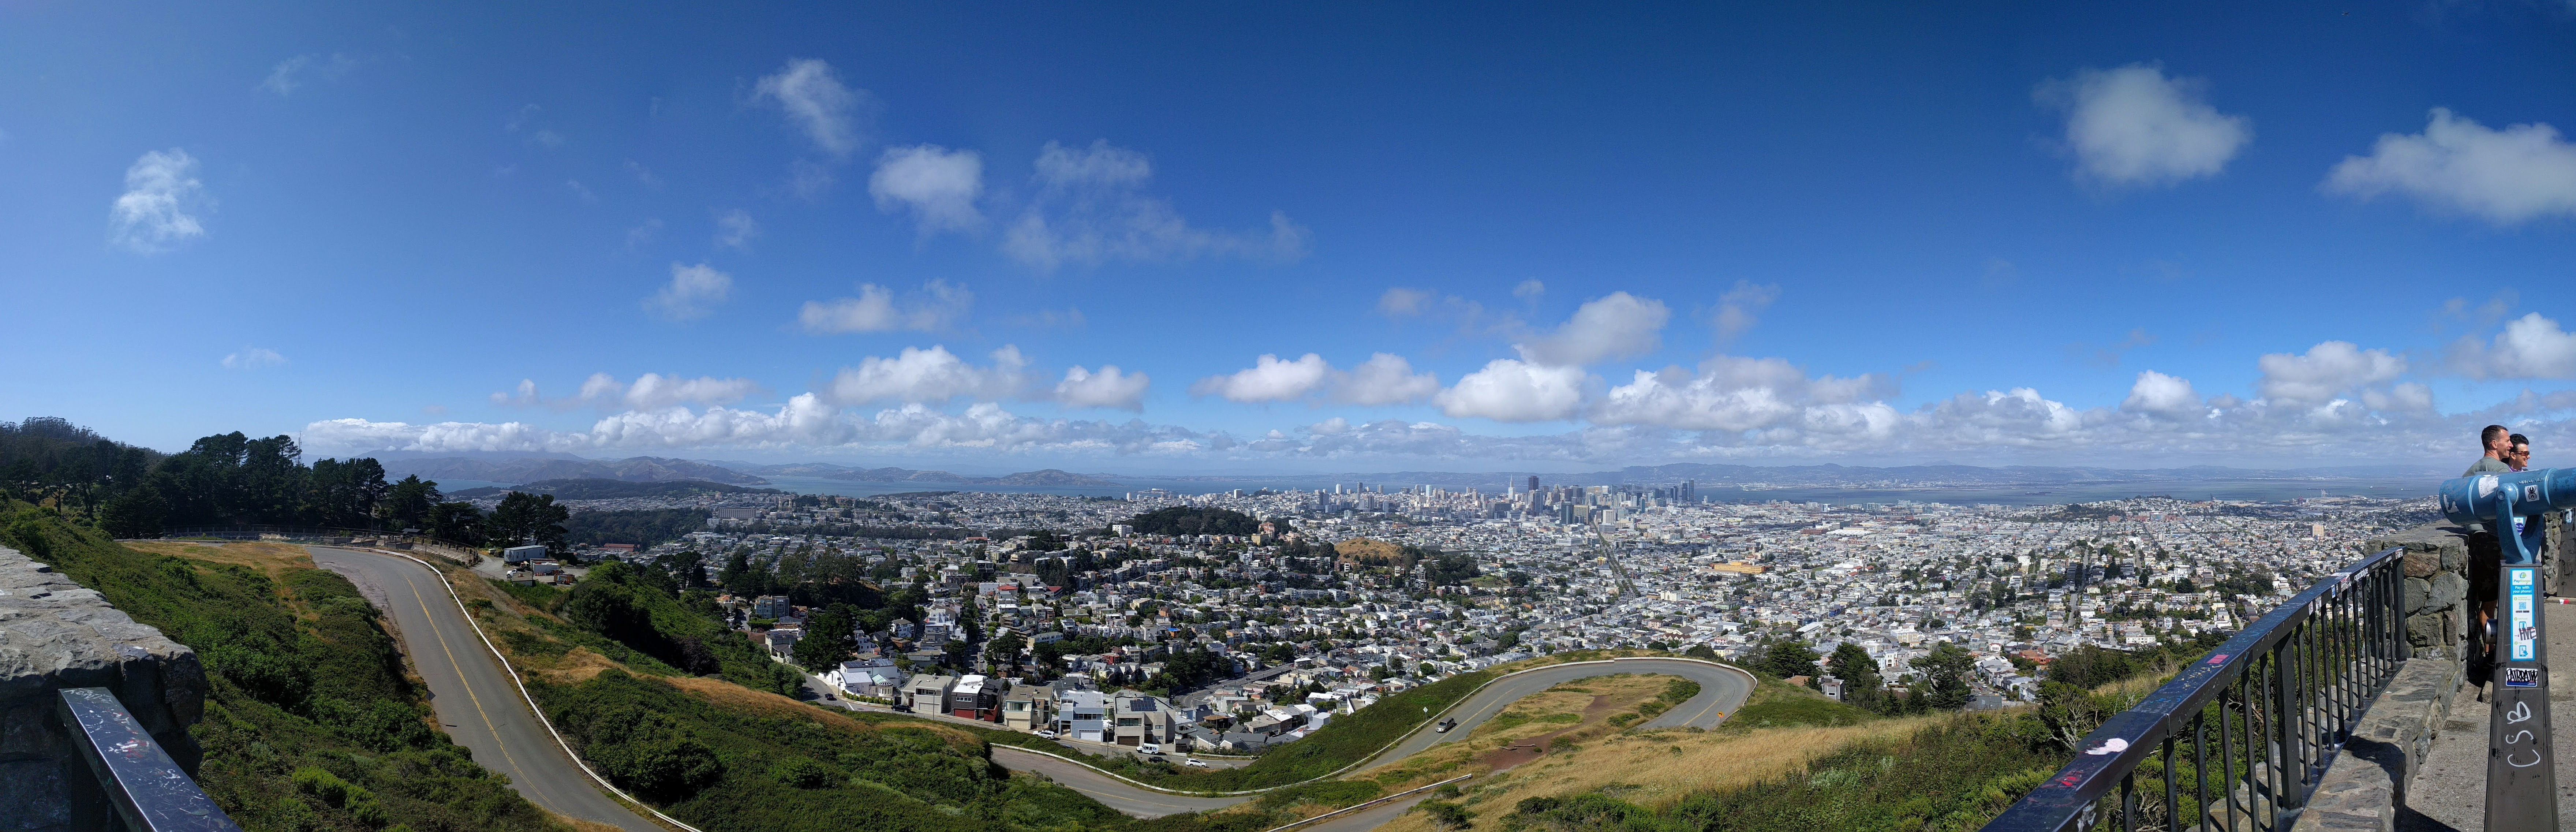 Stitched view from Twin Peaks. The real one, not the TV fiction one.